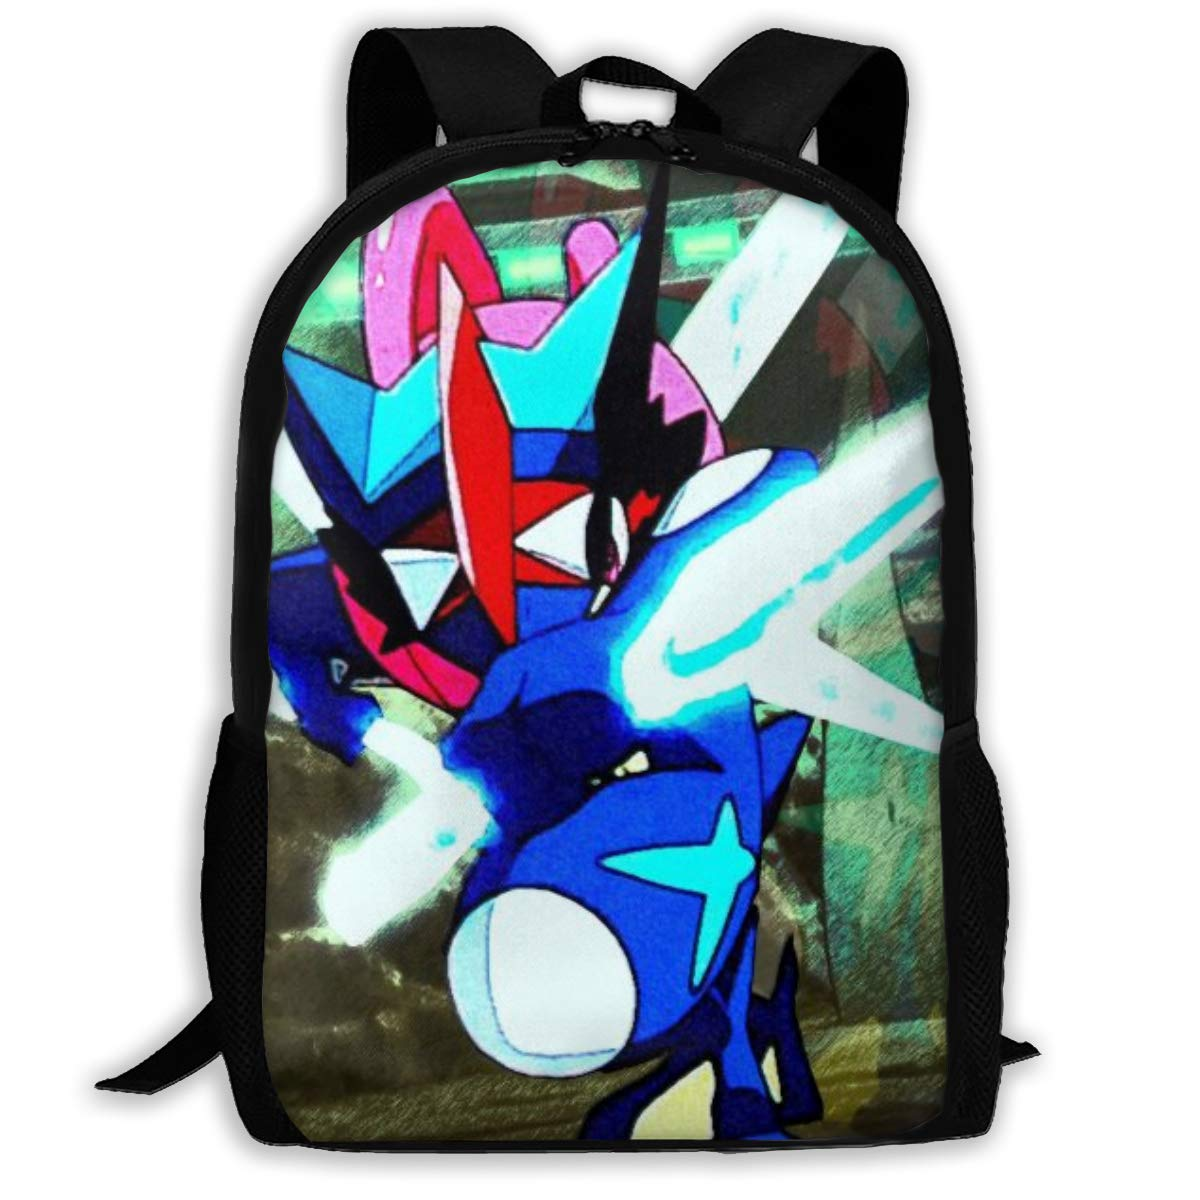 Amazon.com | Childrens School Bag Gre-Ninja Lu-cario ...